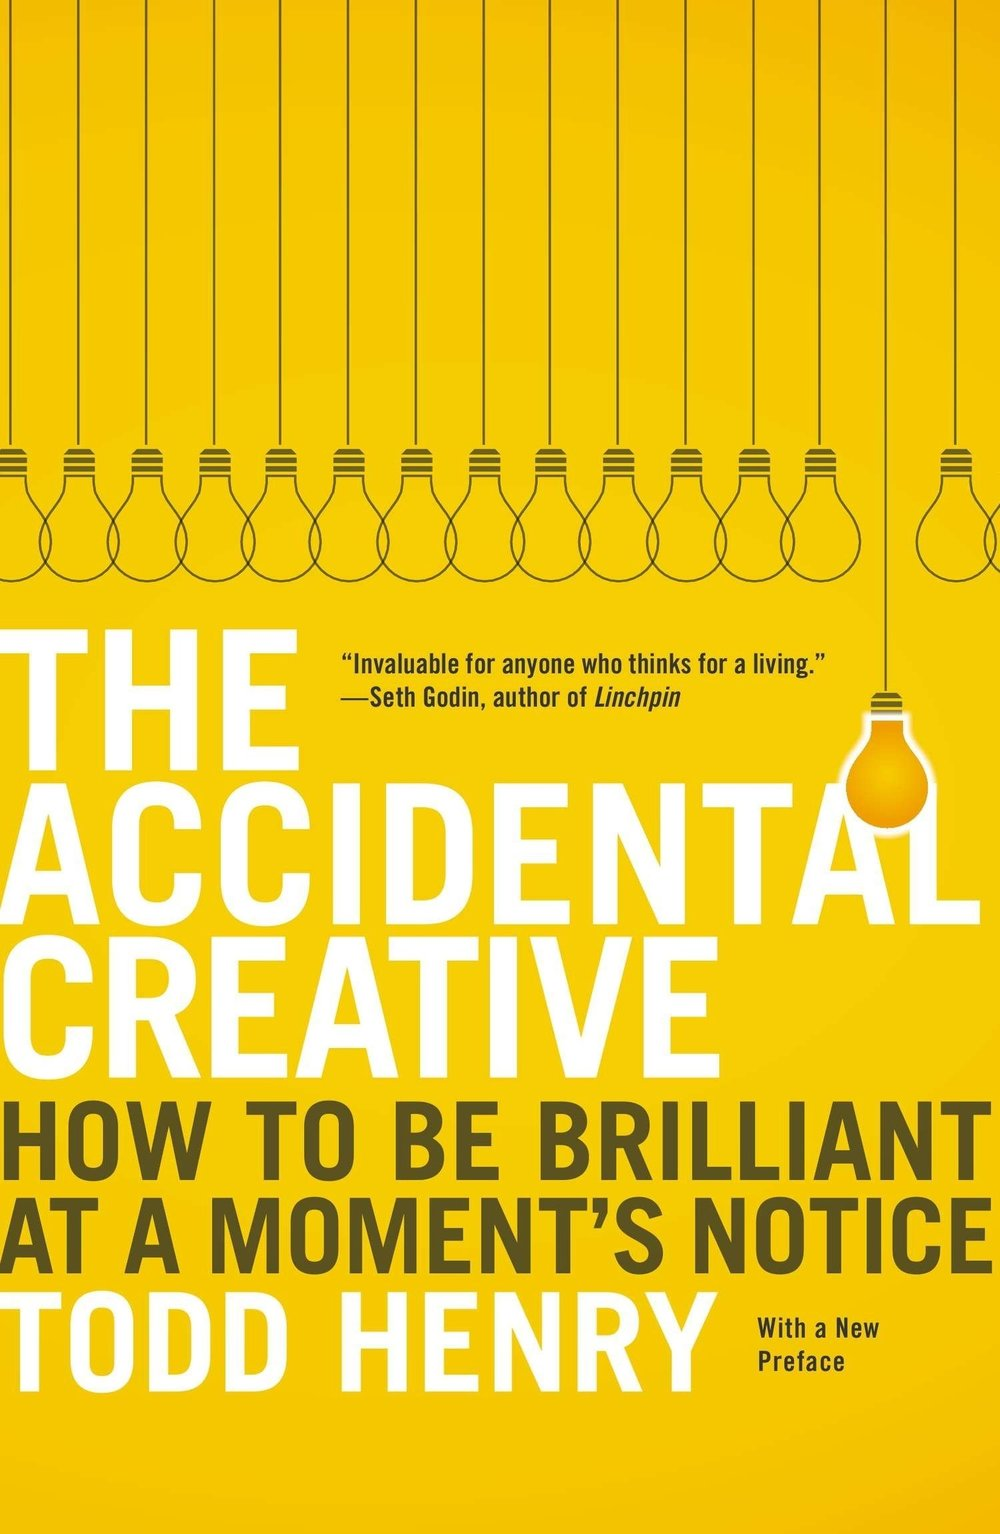 The Accidental Creative Todd Henry - Business creativity expert Todd Henry explains how to establish effective practices that unleash your creative potential. Born out of his consultancy and his popular podcast, Henry has created a practical method for discovering your personal creative rhythm by focusing on five key elements: focus, relationships, energy, stimuli, and hours. (Google Books)